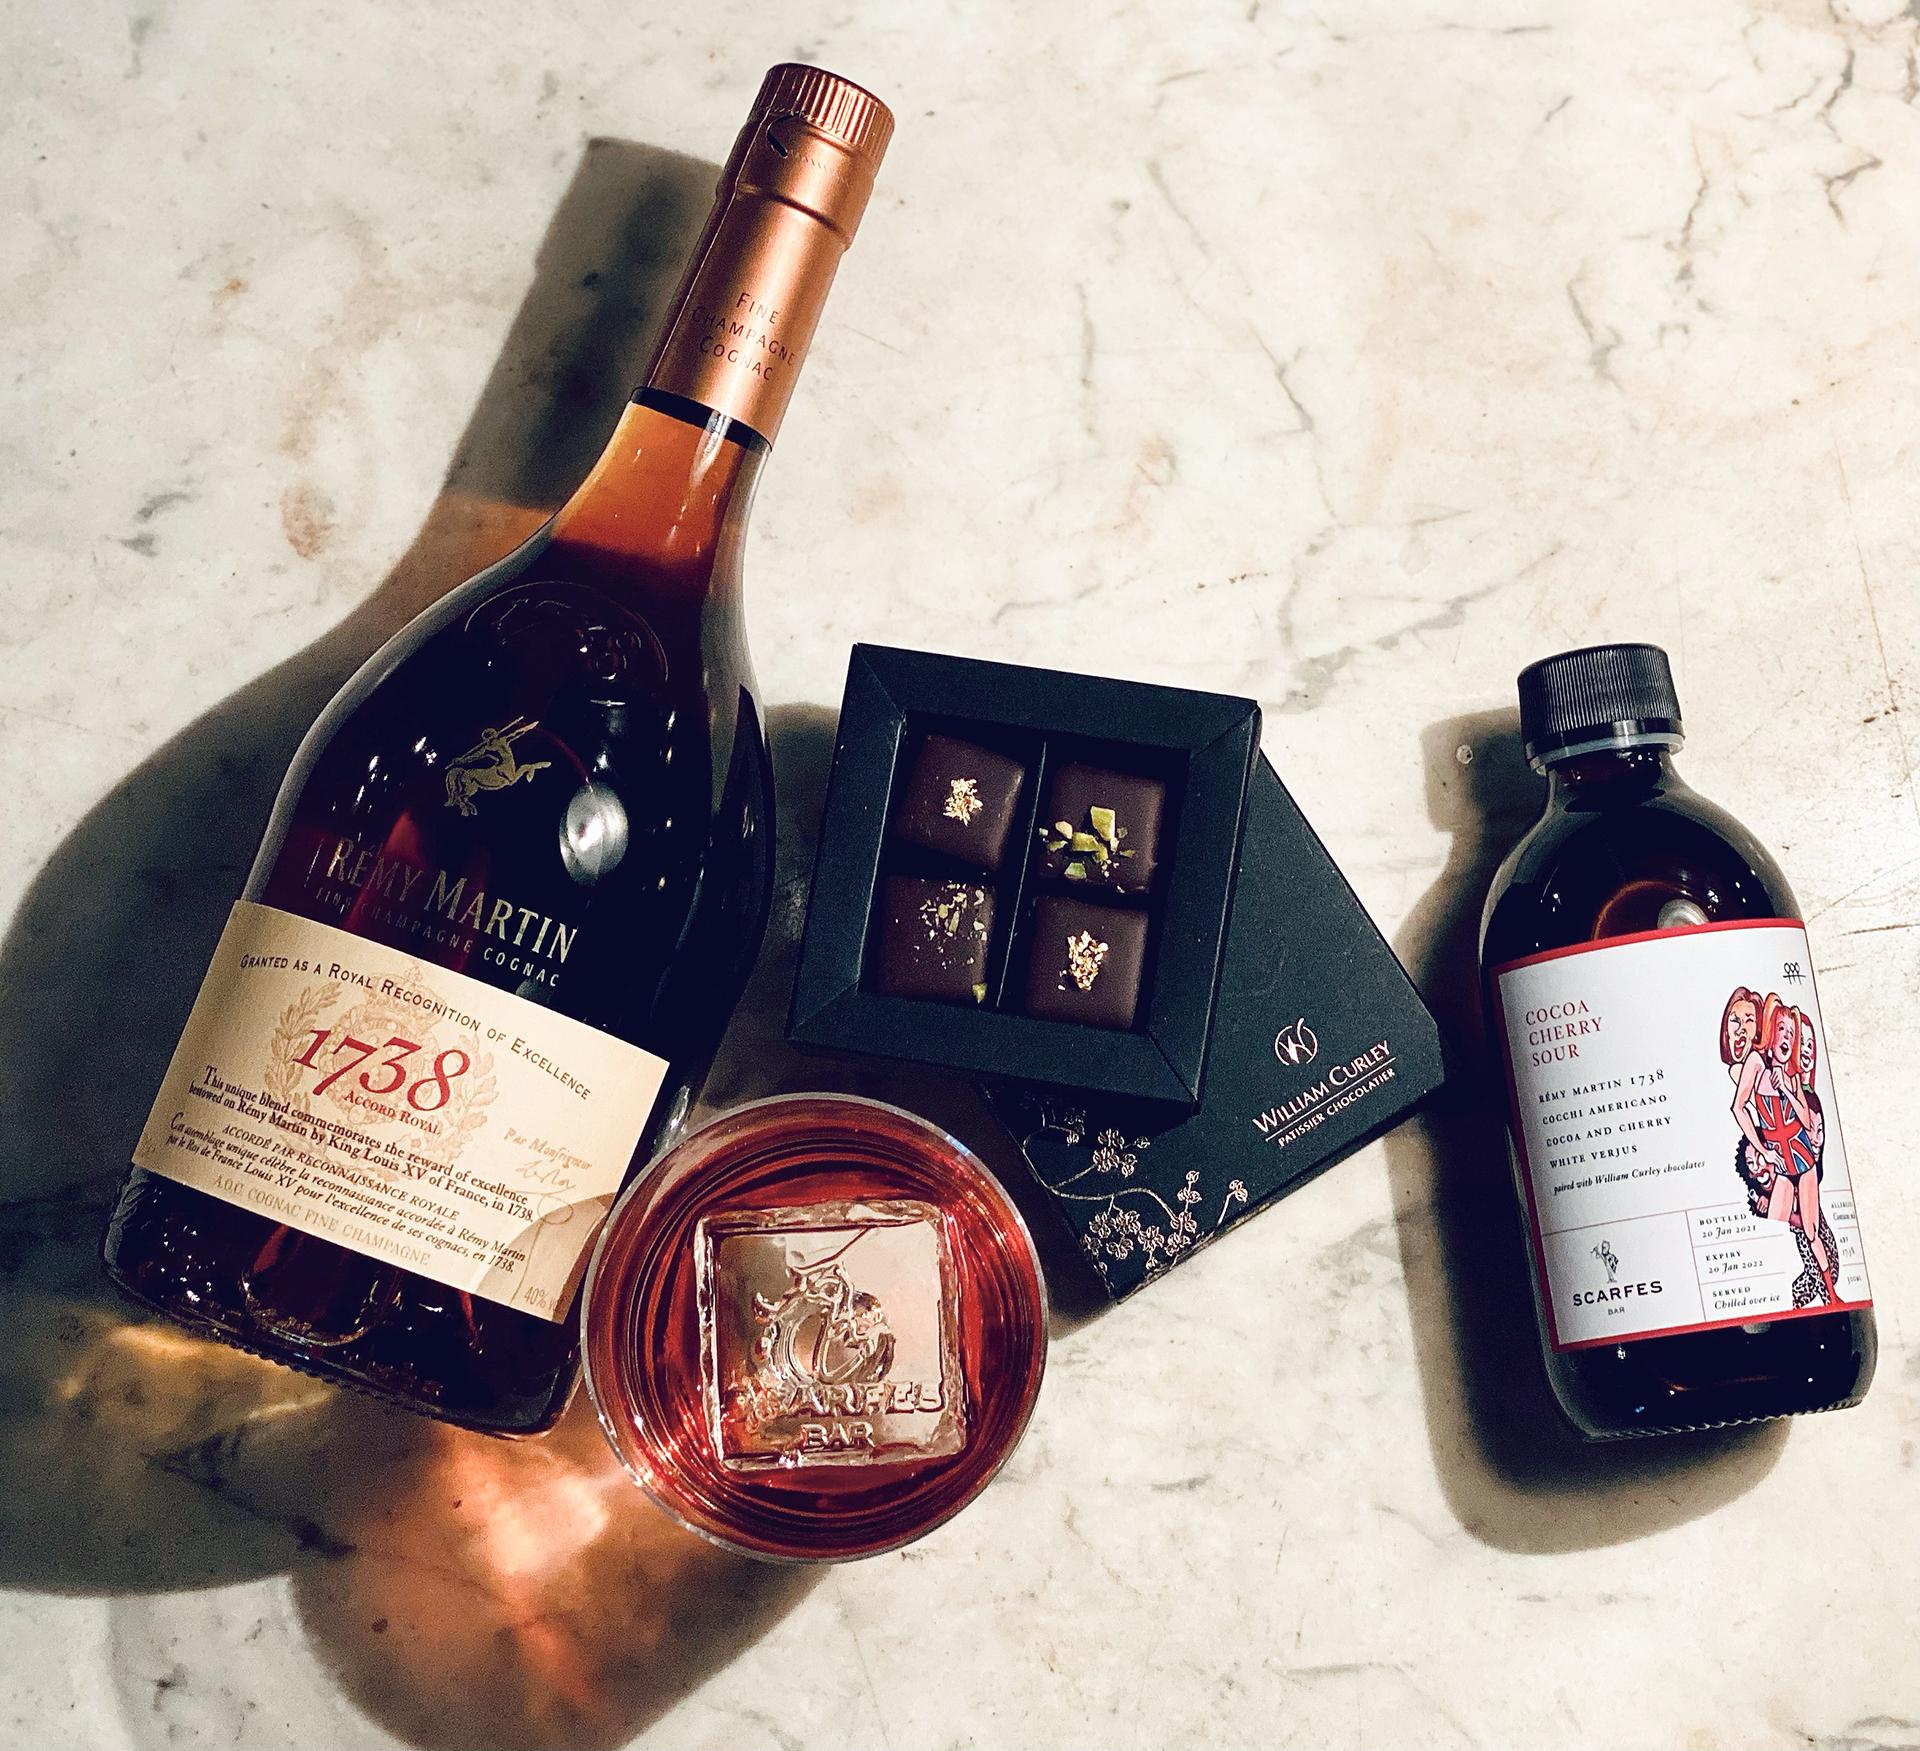 Rémy Martin x Scarfes Bar x William Curley